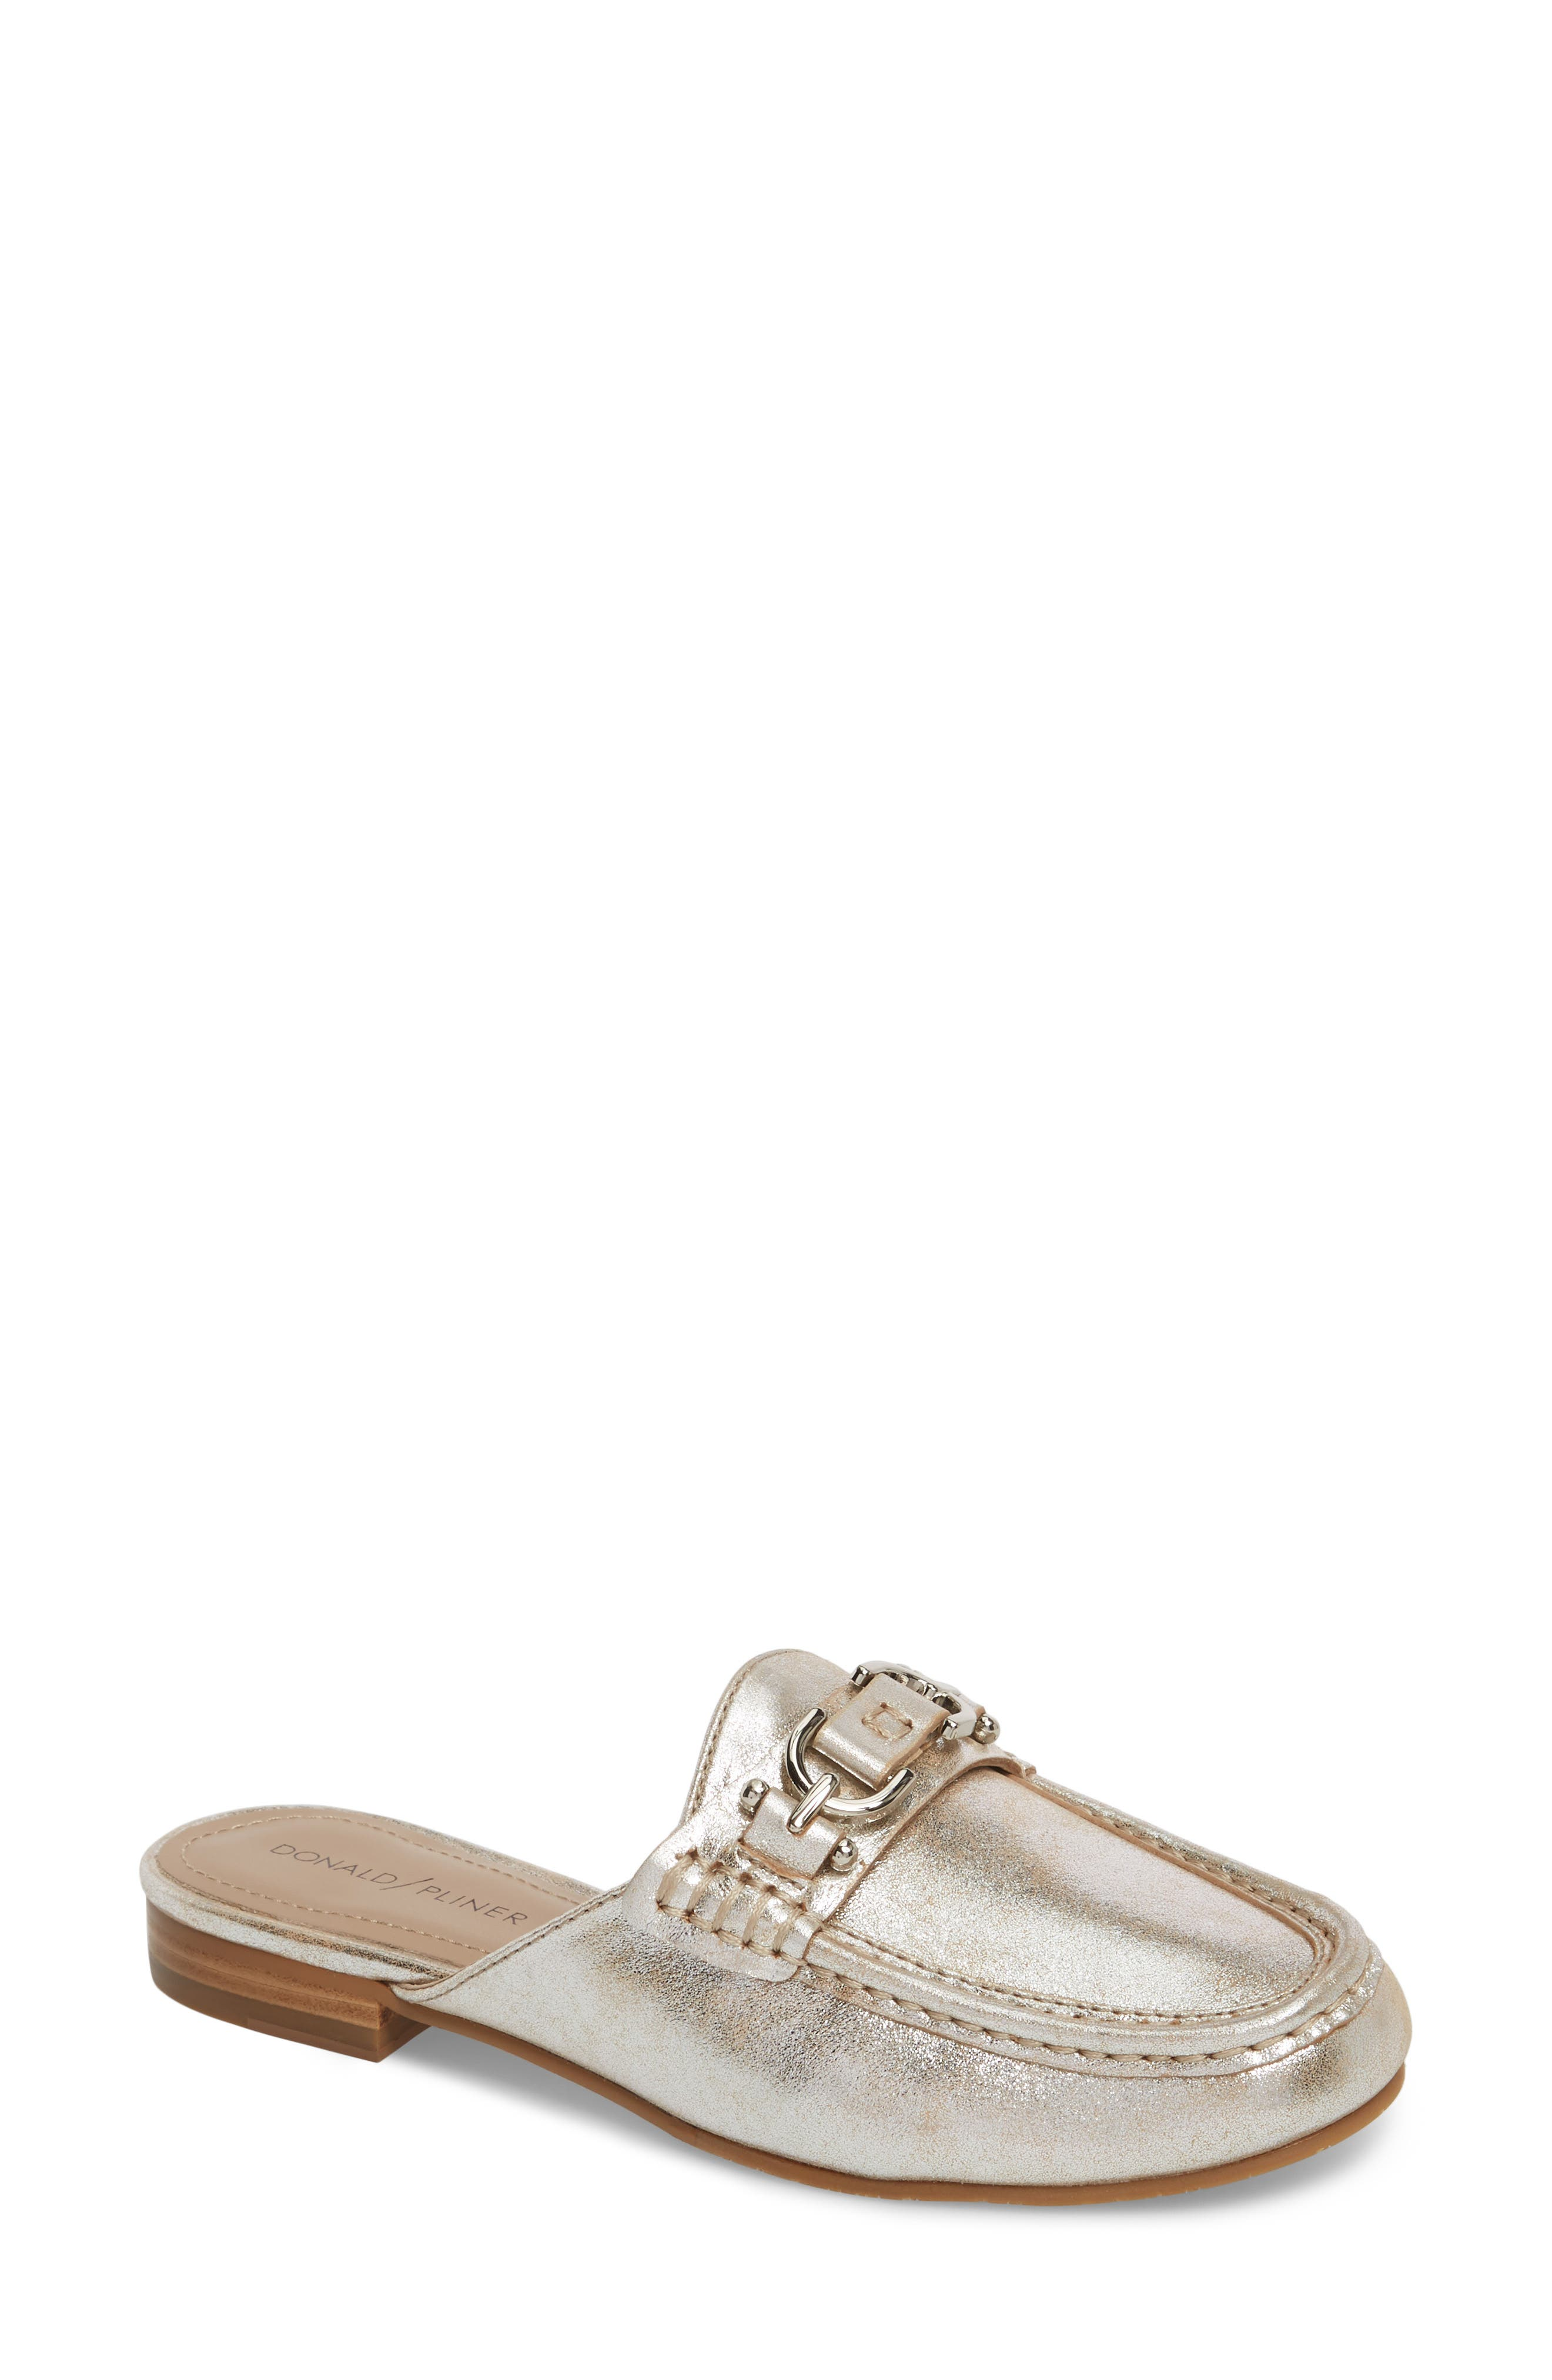 Sylvi Loafer Mule,                         Main,                         color, Silver Leather